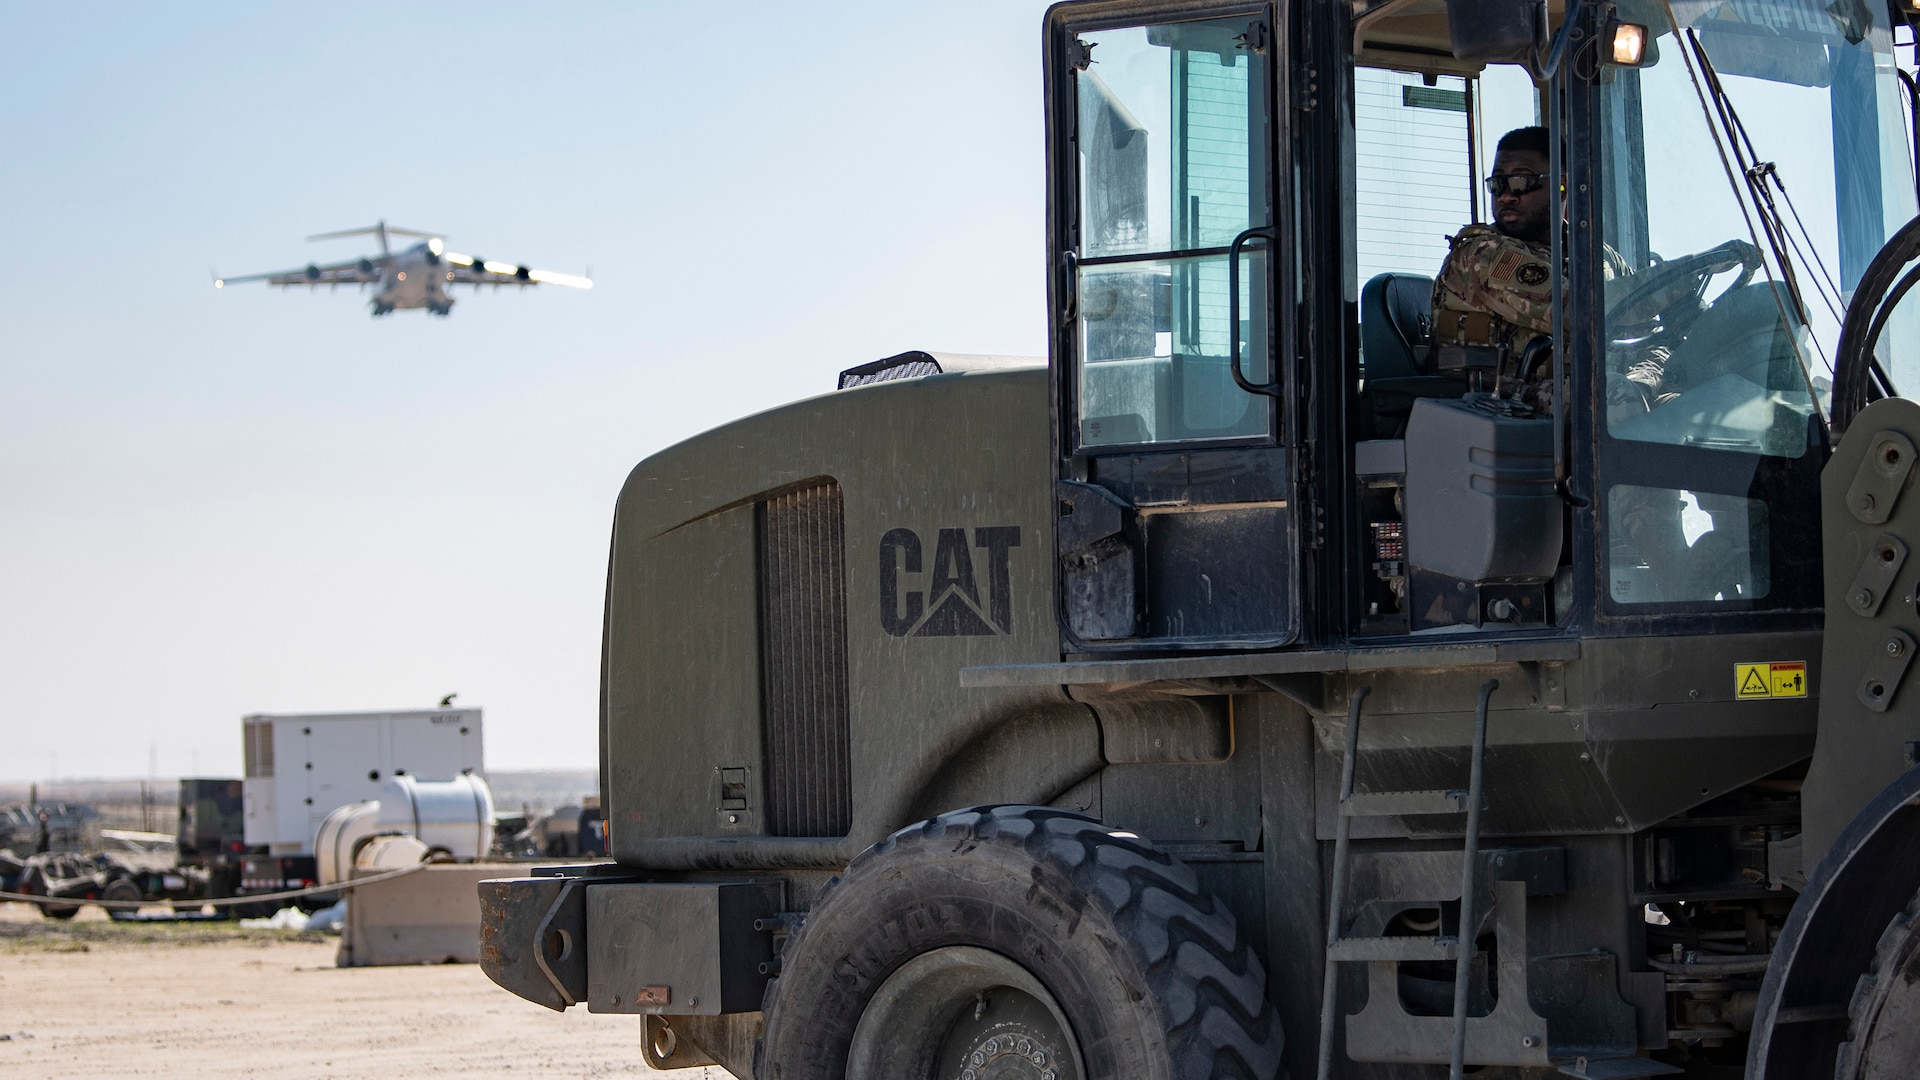 A photo of an Airman driving machinery